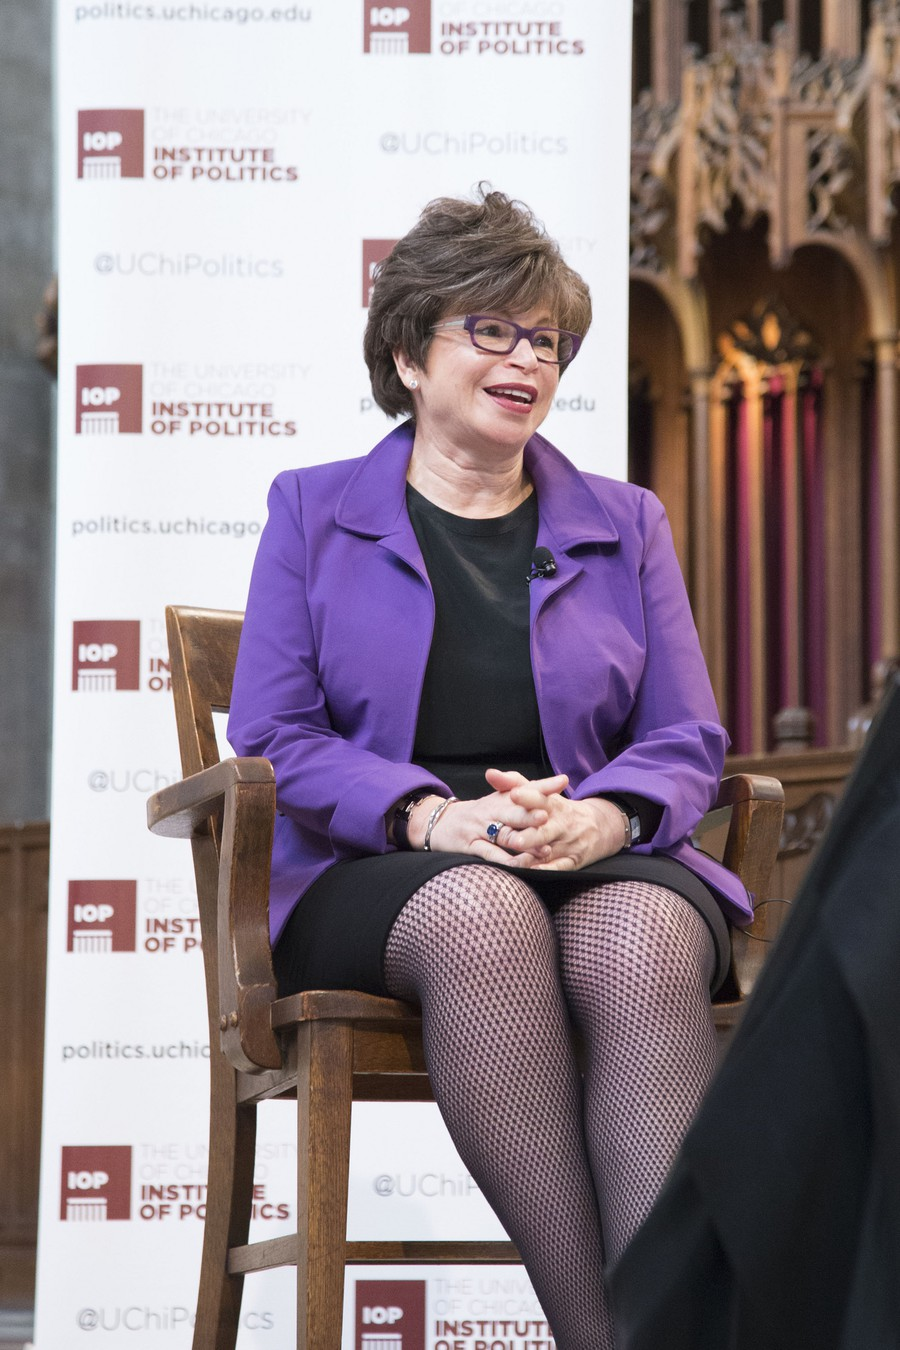 Former senior White House advisor and current Law School distinguished senior fellow Valerie Jarret speaks at an IOP event in Rockefeller Chapel.